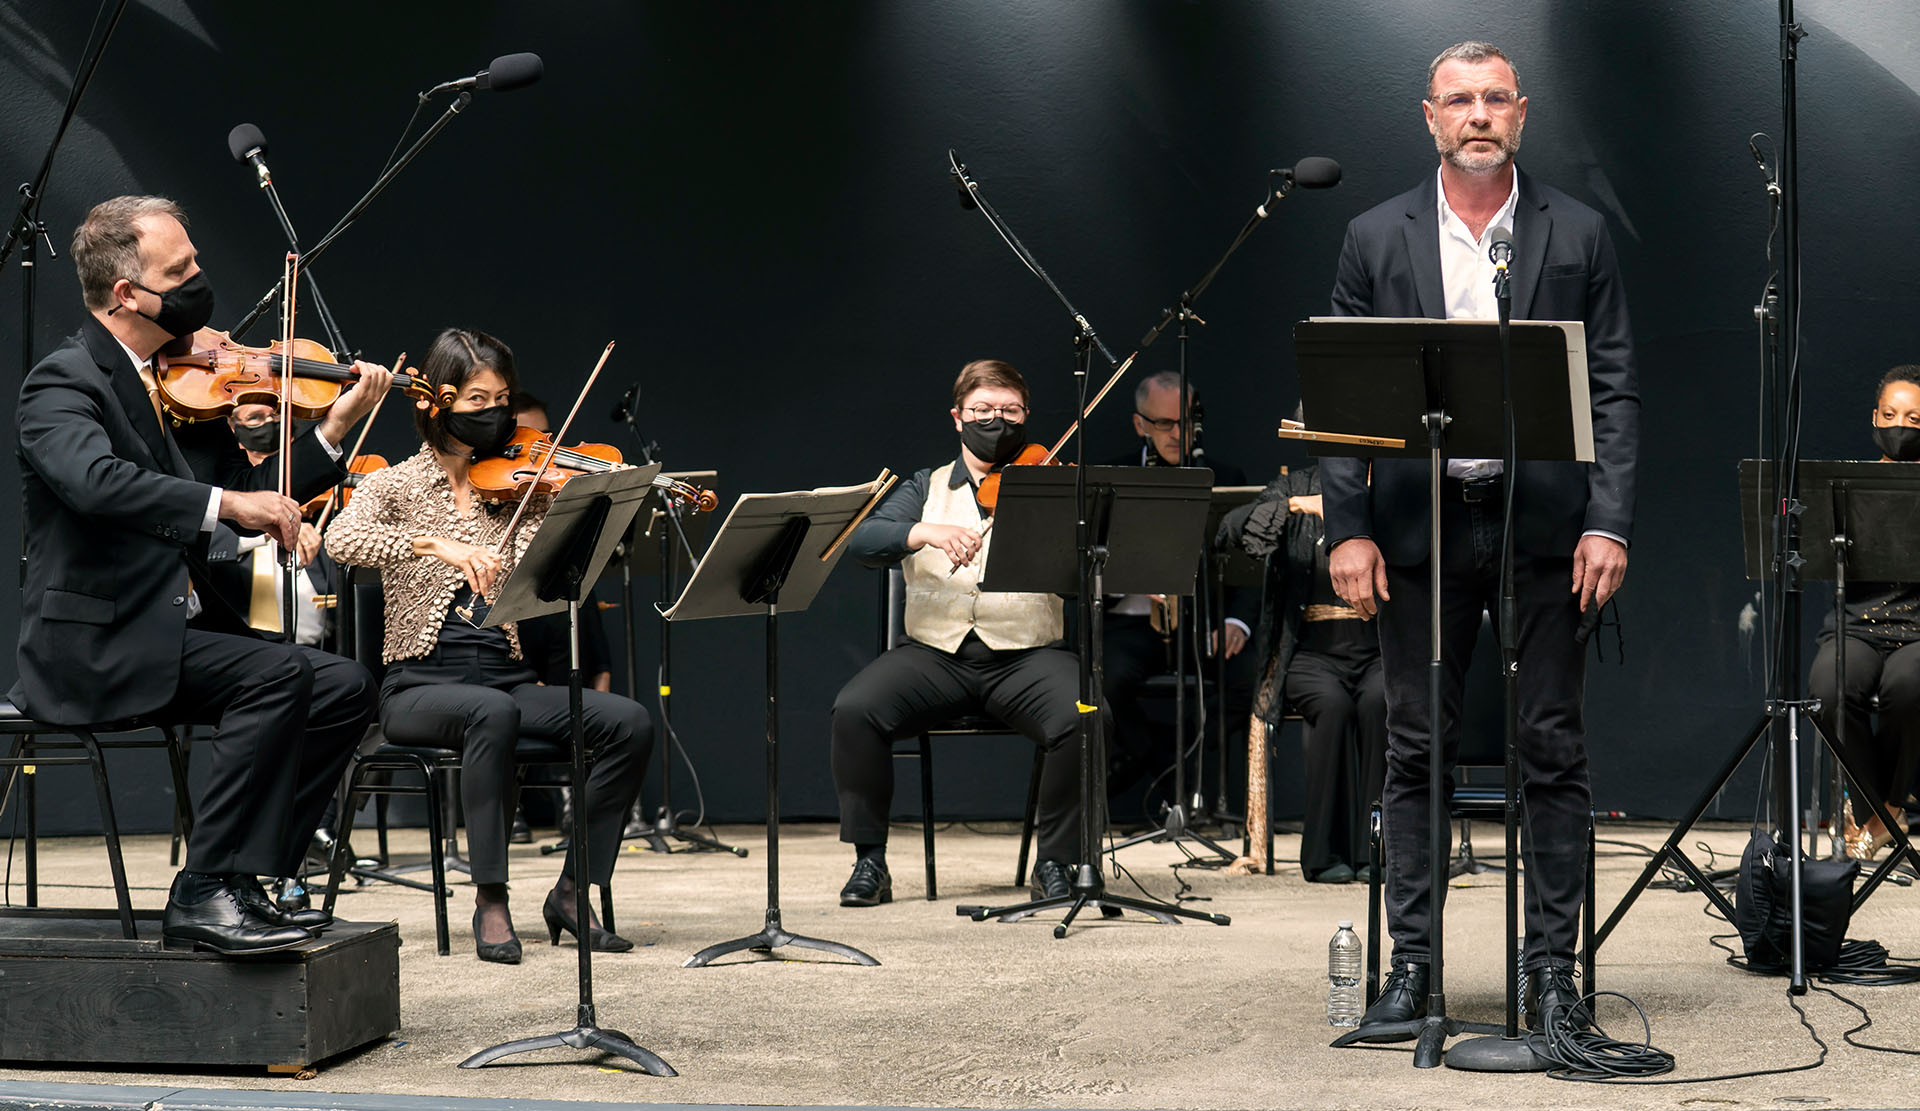 Liev Schreiber and members of Orpheus perform on stage against a black background